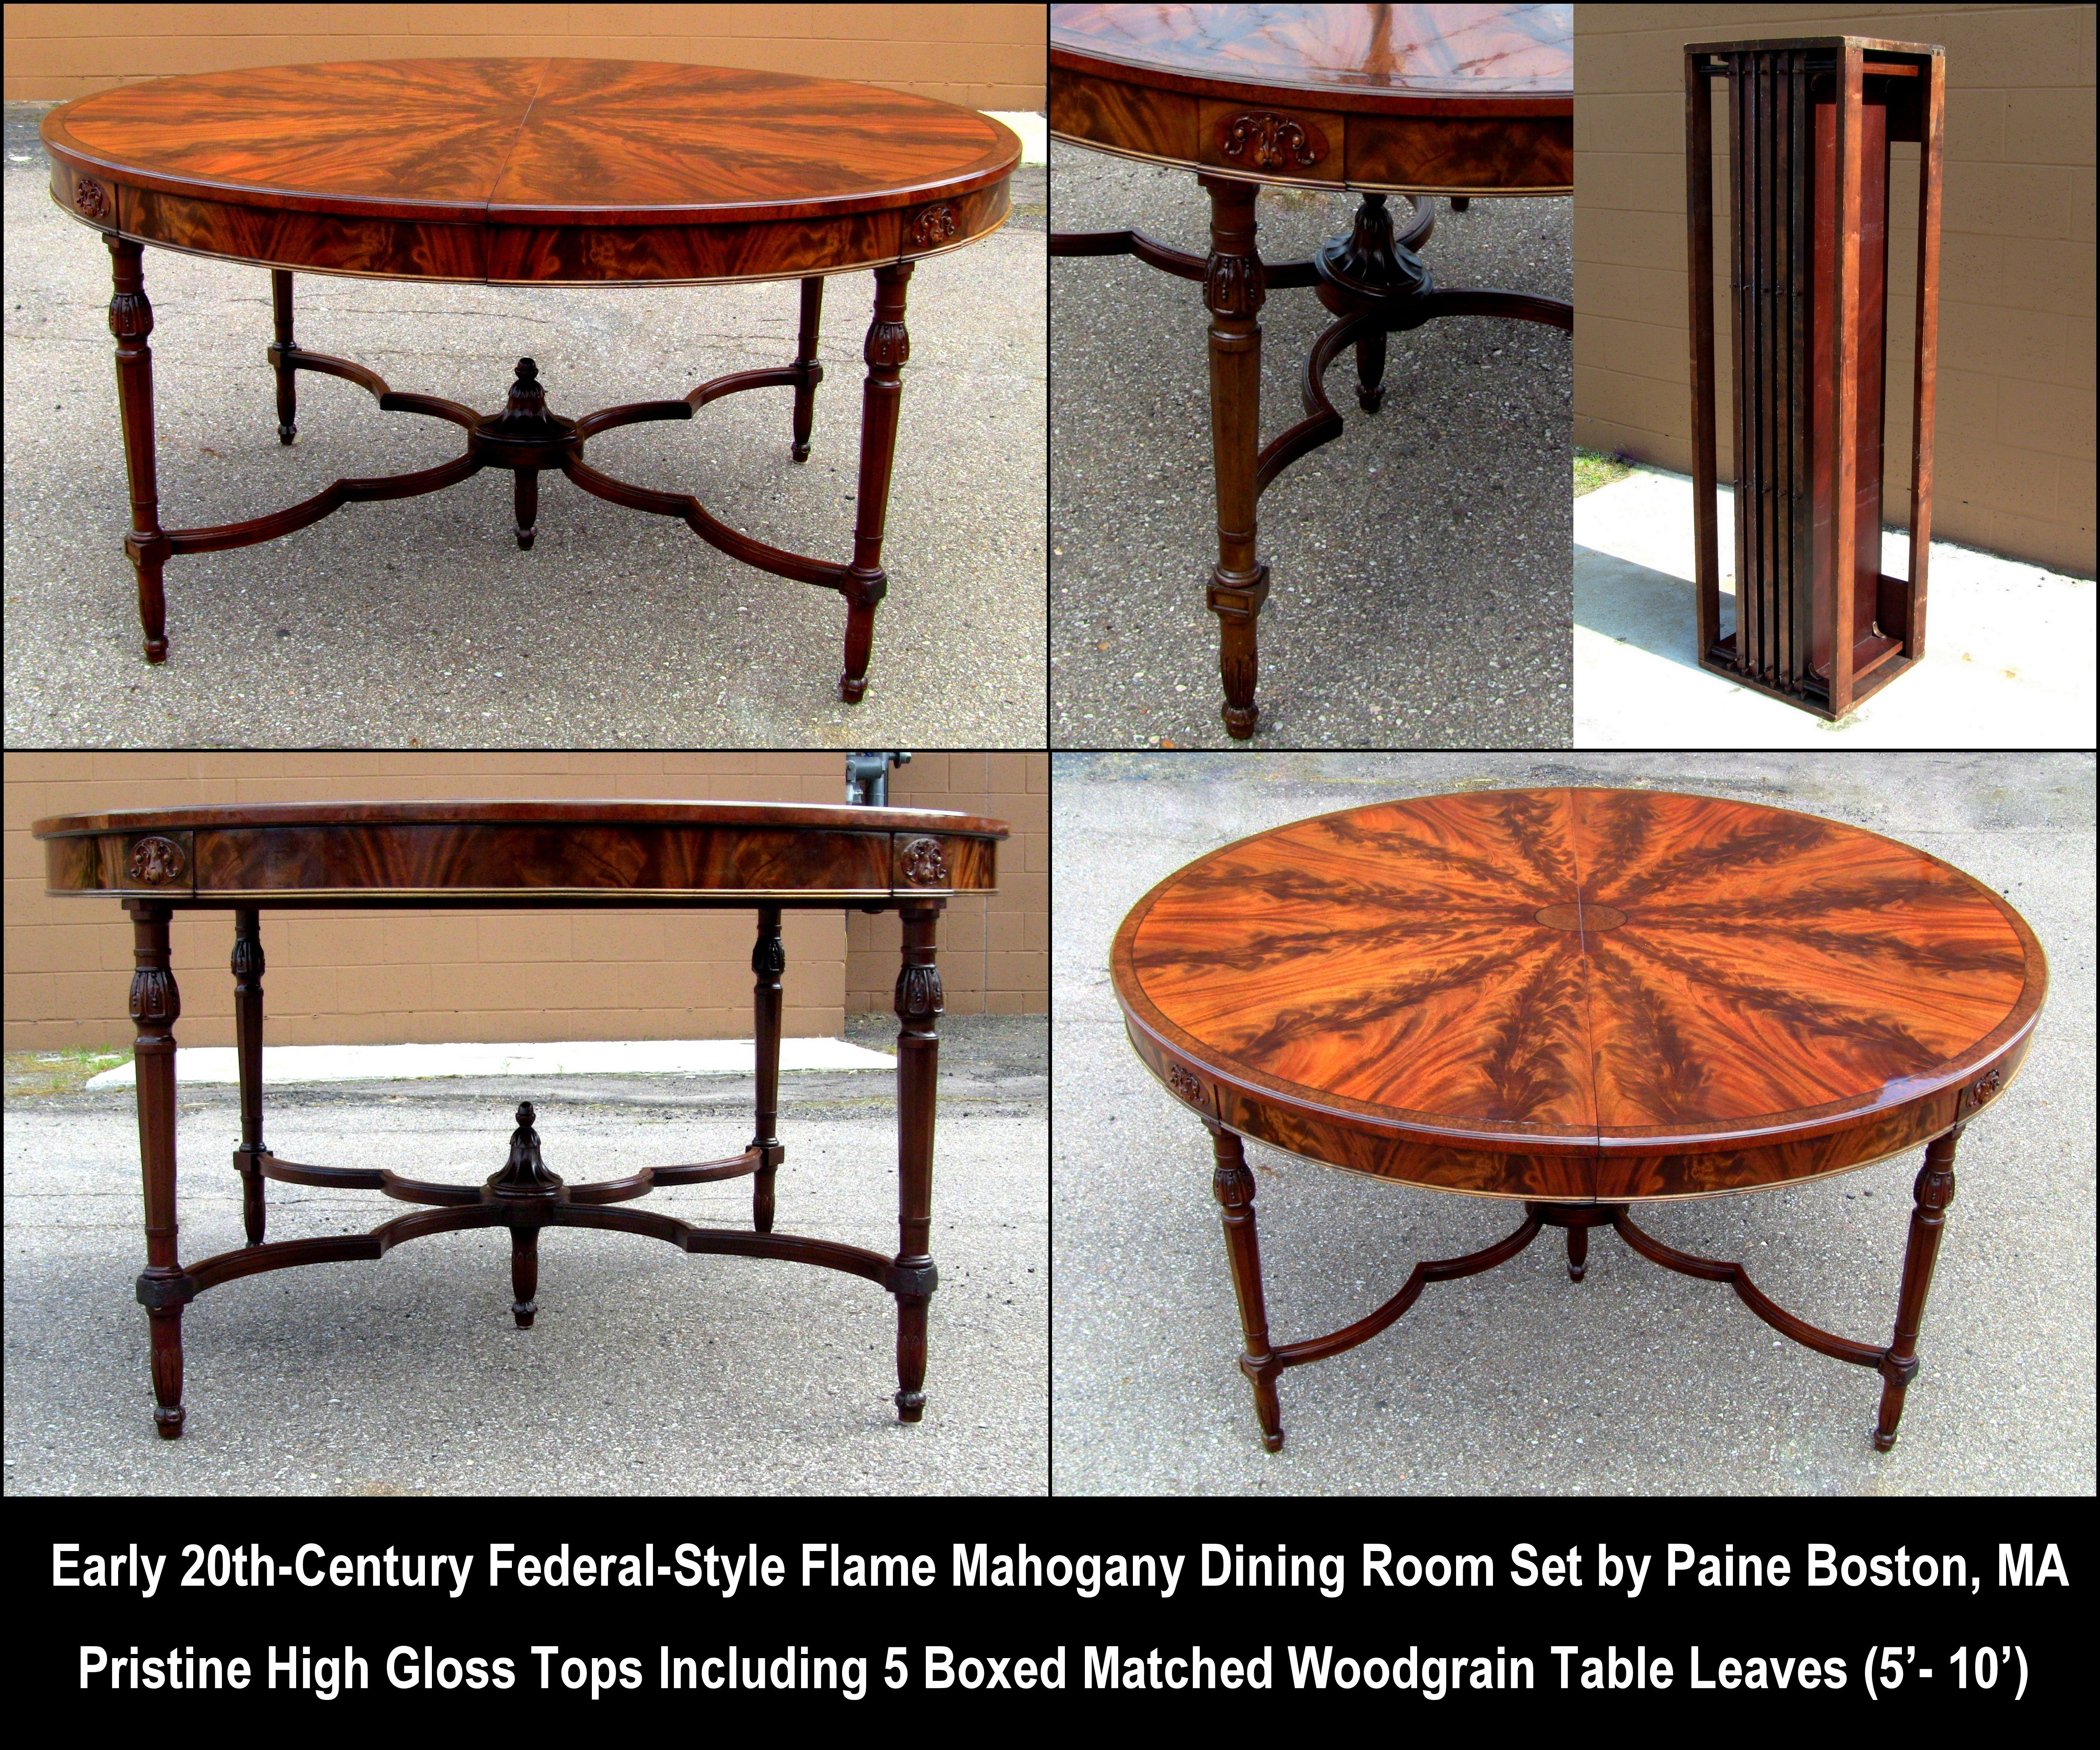 An Amazing Pristine Federal Period Style Dining Room Set By Paine Furniture Company Of Boston Ma